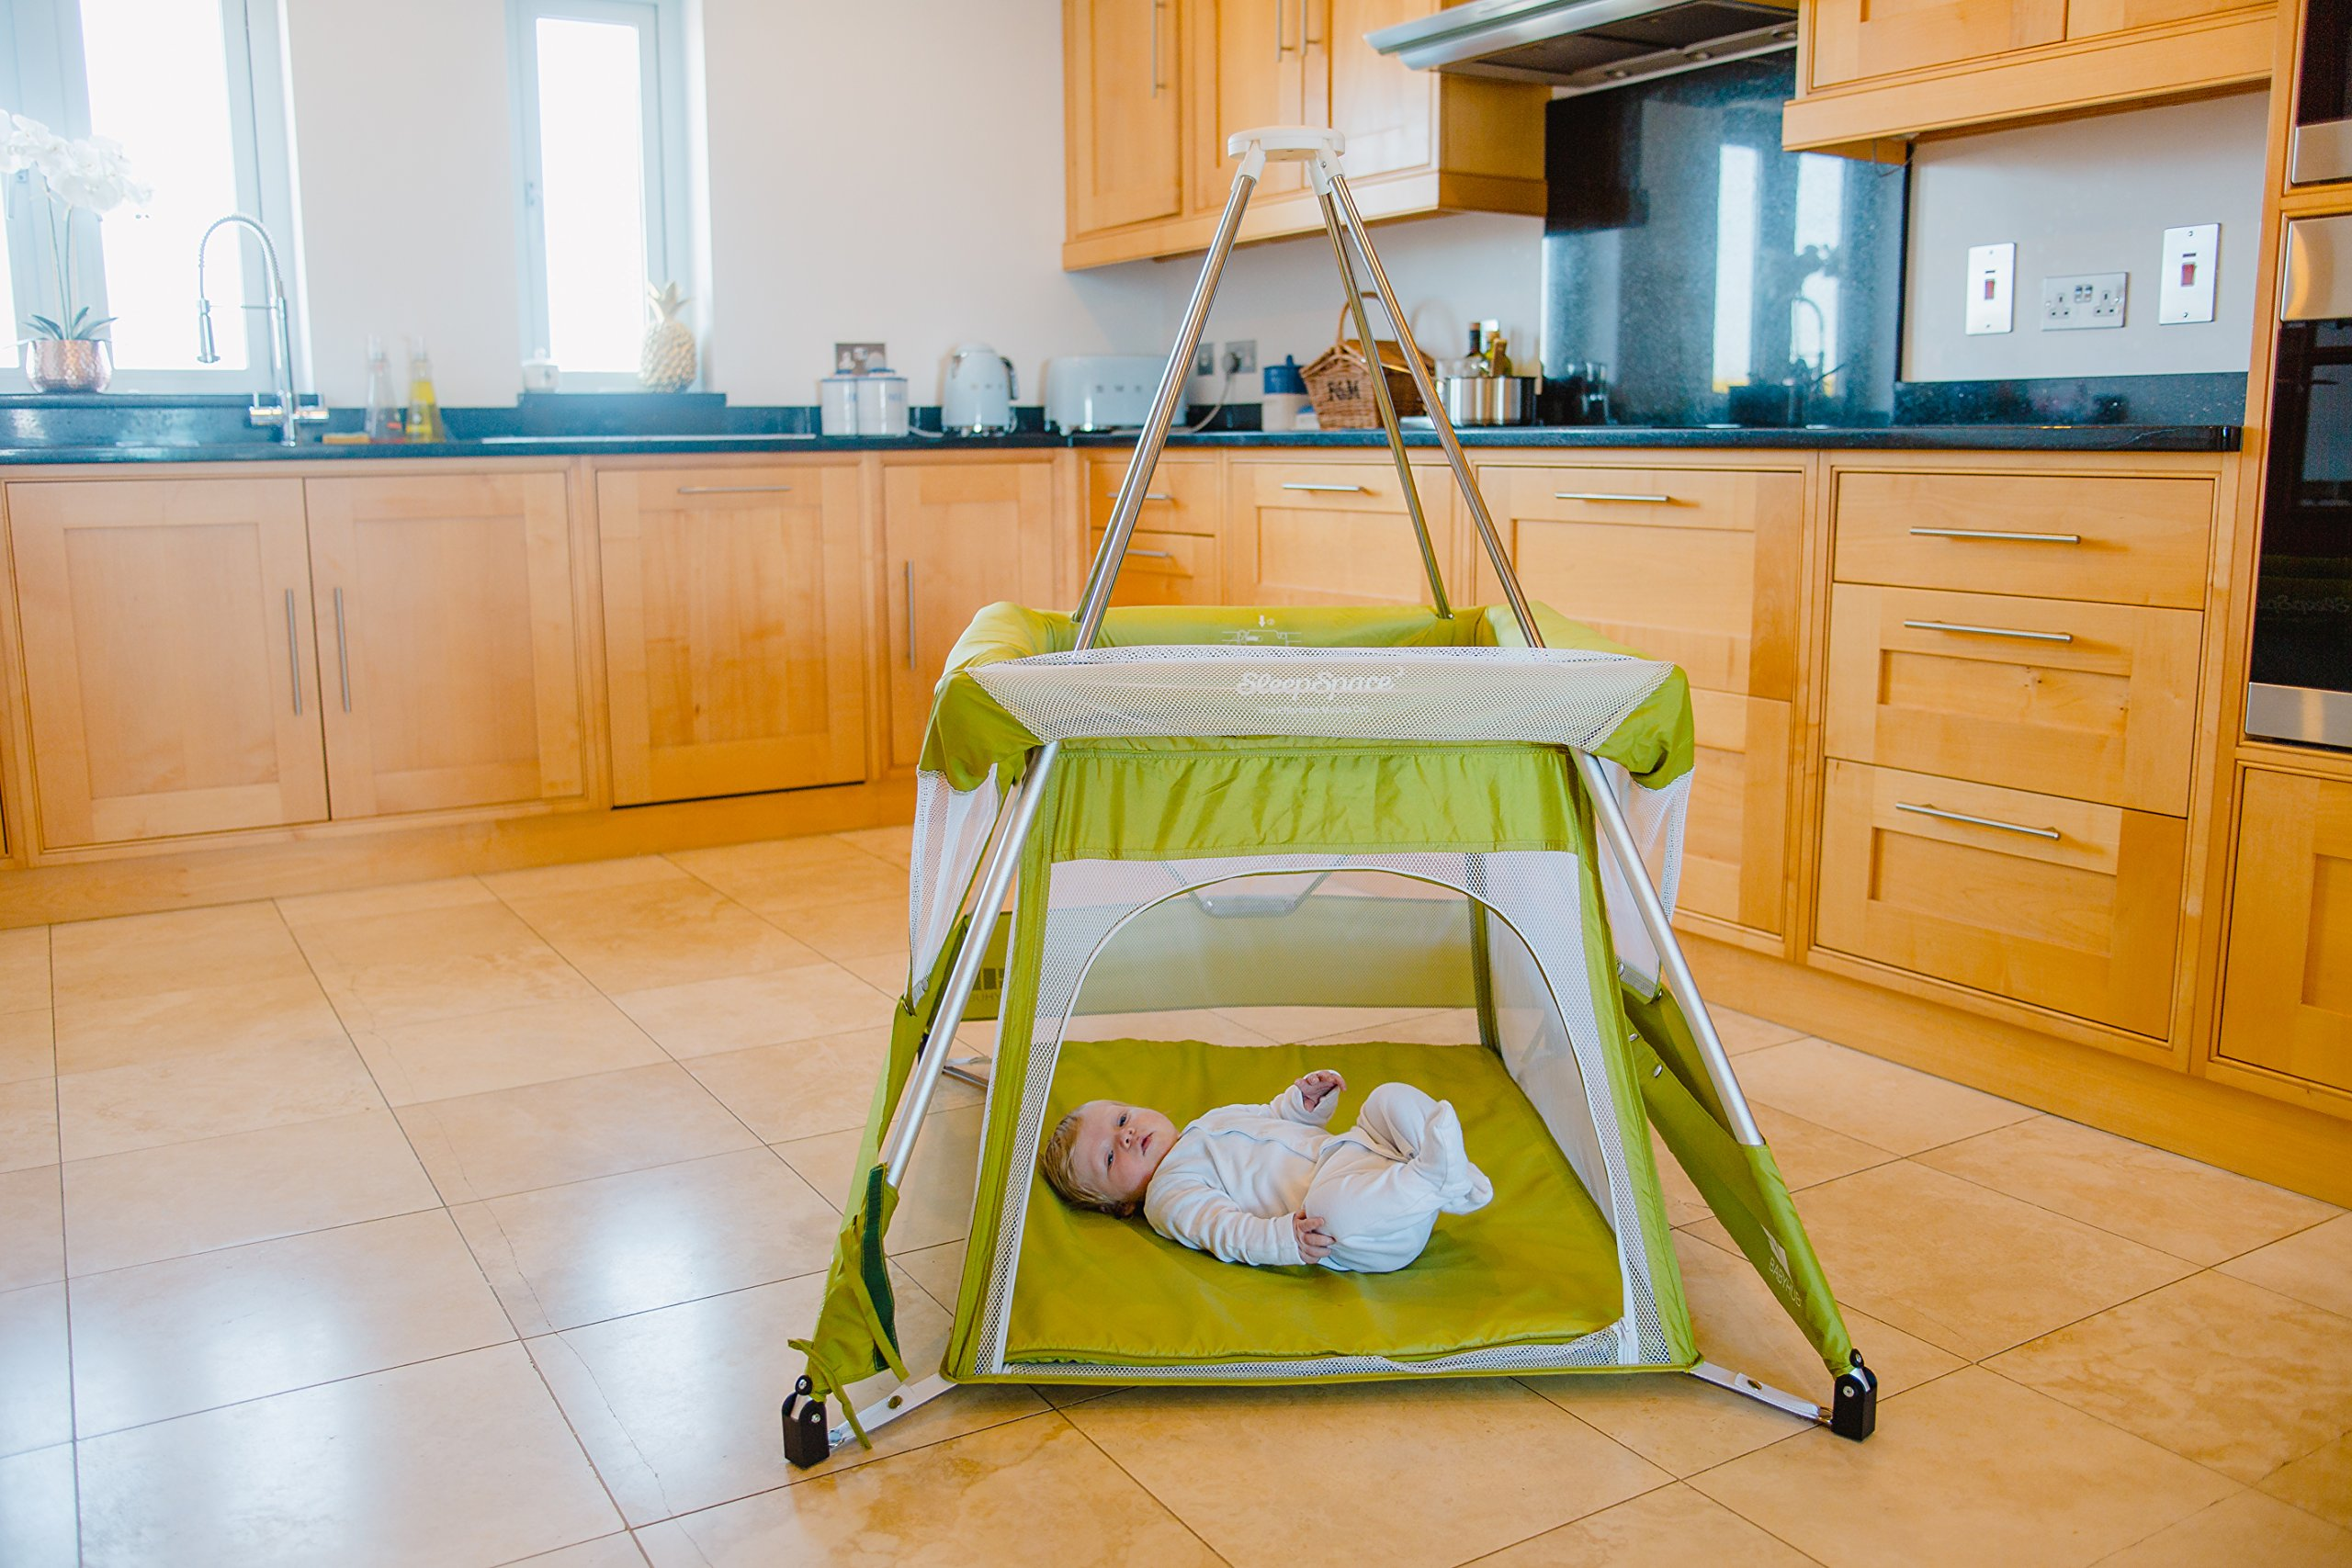 BabyHub SleepSpace Travel Cot with Mosquito Net, Green BabyHub Three cots in one; use as a travel cot, mosquito proof space and reuse as a play tepee Includes cotton canvas tepee cover Can be set up and moved even while holding a baby. Dimensions Open - L 116cm x W 960cm x H 122cm (when opened). Dimensions Closed - 83cm H x 22cm x 42cm (in bag) 4